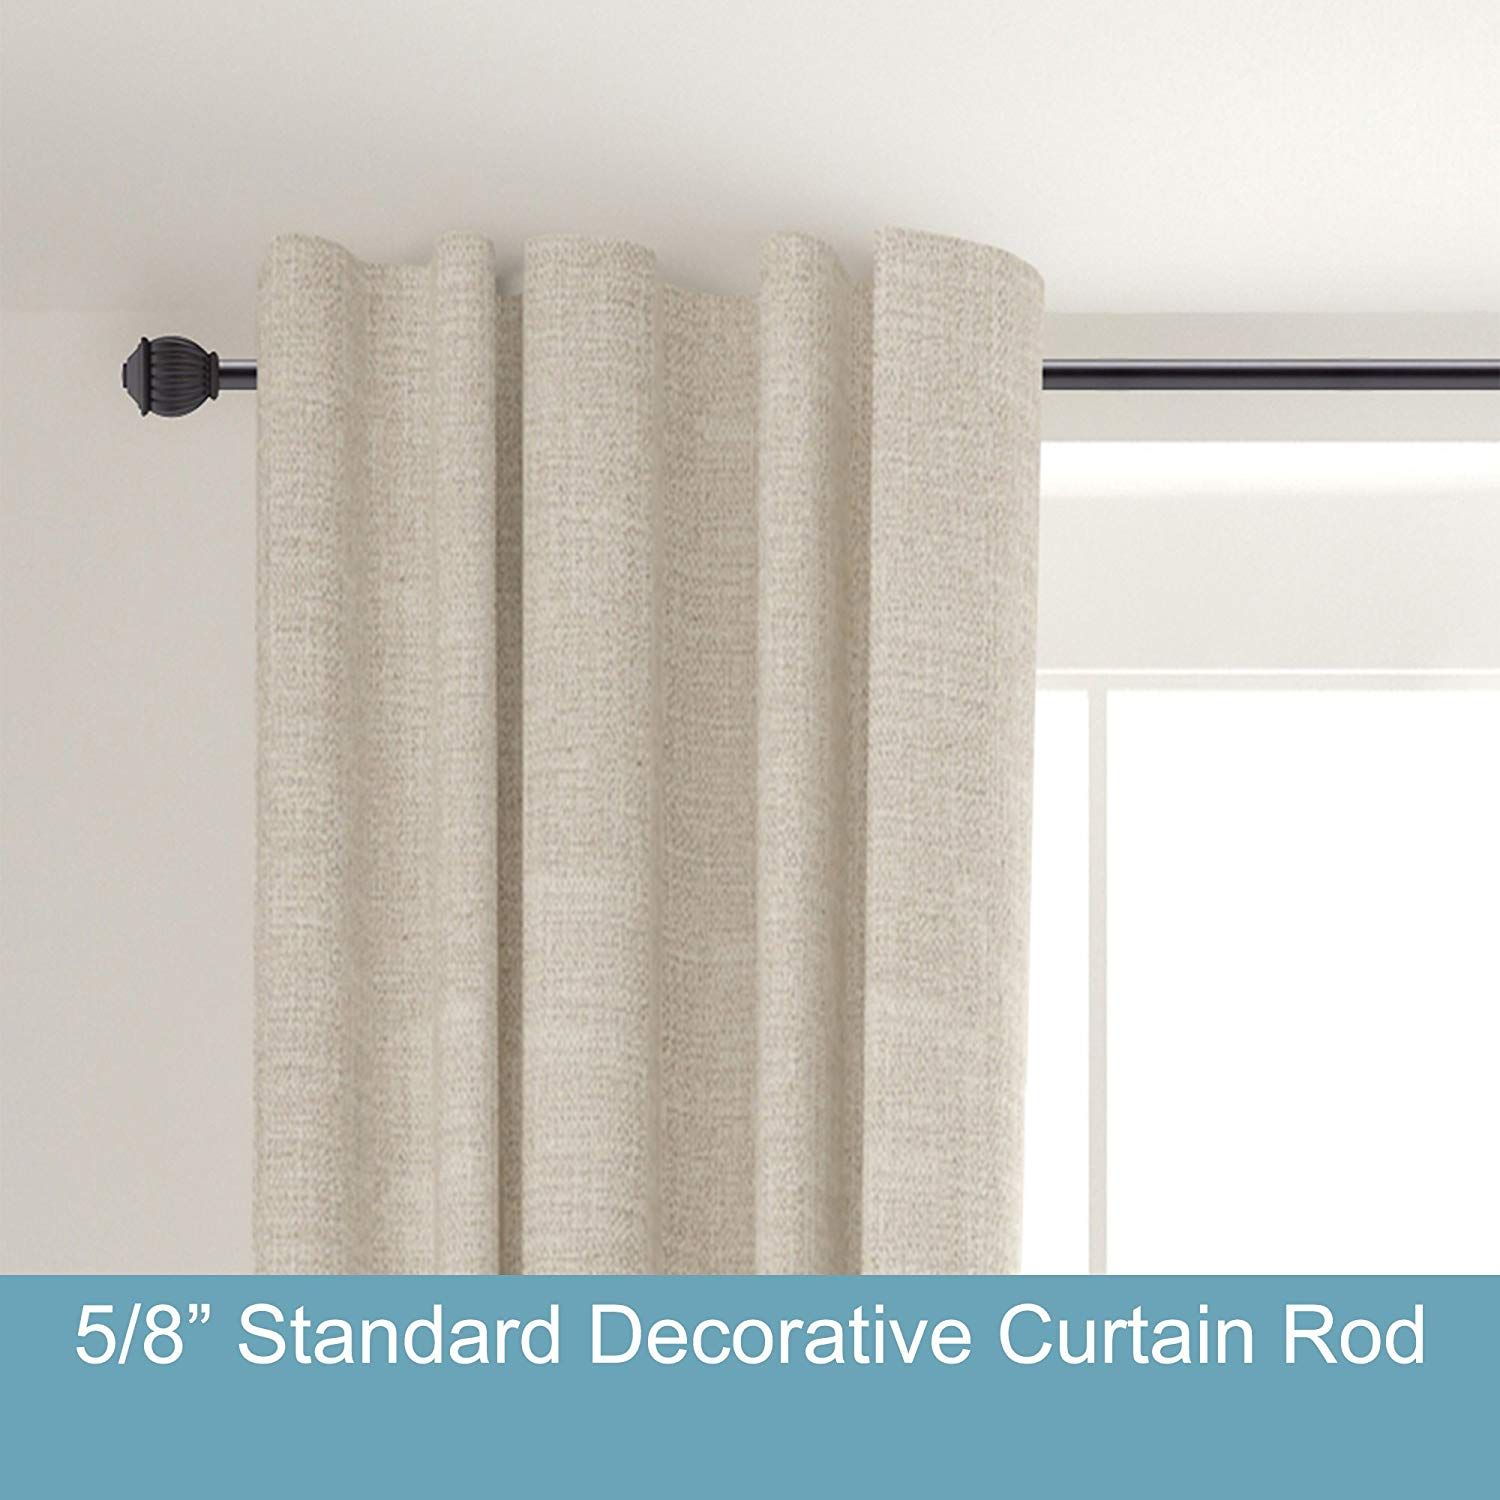 Kenney Beckett 5 8 Standard Decorative Window Curtain Rod 28 48 Black Home Kitchen Window Curtain Rods Decorative Curtain Rods